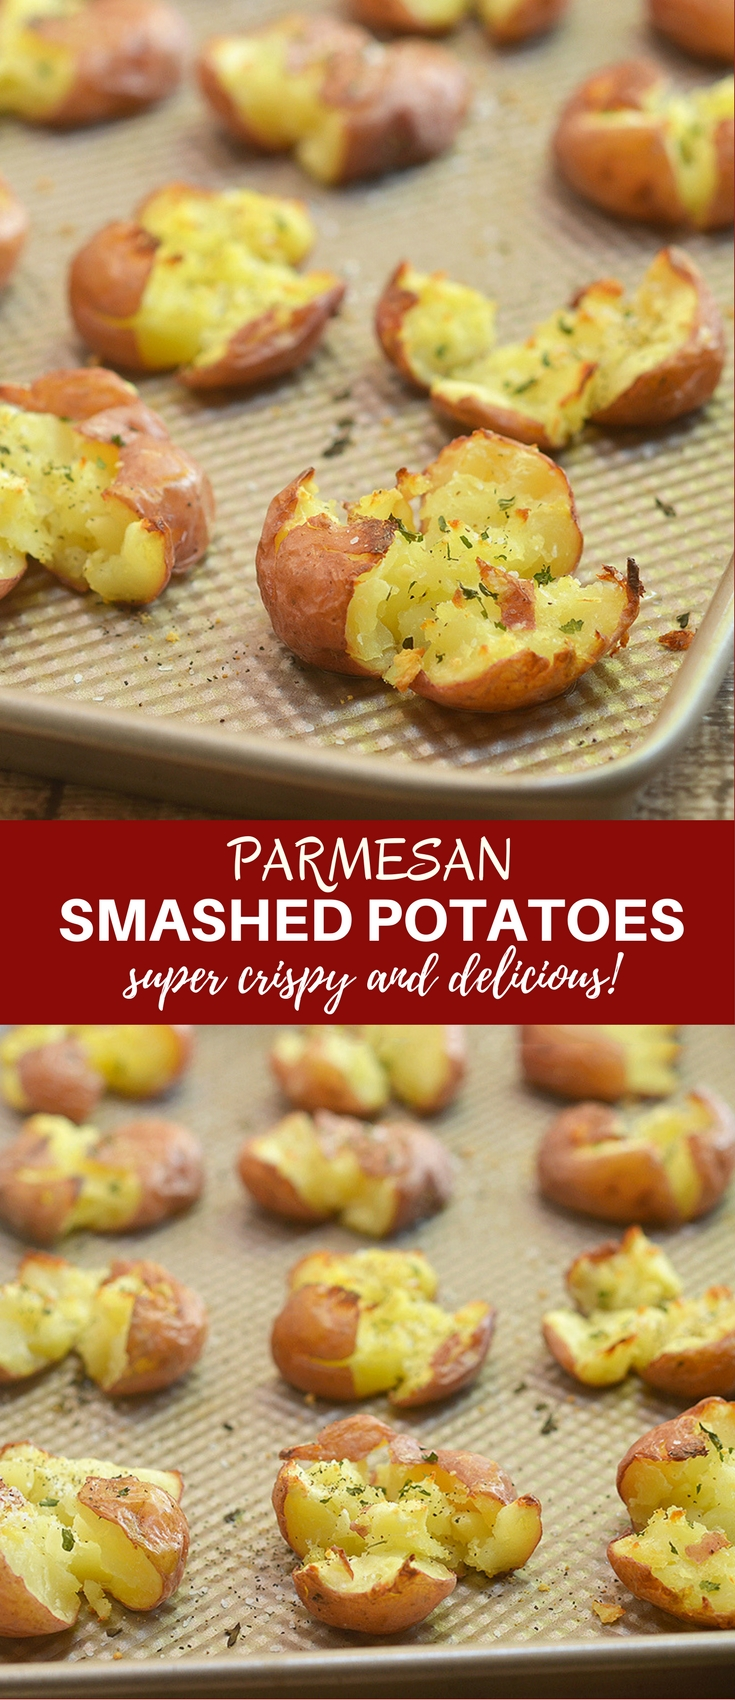 Parmesan Smashed Potatoes are fluffy on the inside and crispy on the outside for a seriously addicting side dish. They might not be the prettiest spuds on the block but they sure are one of the tastiest!